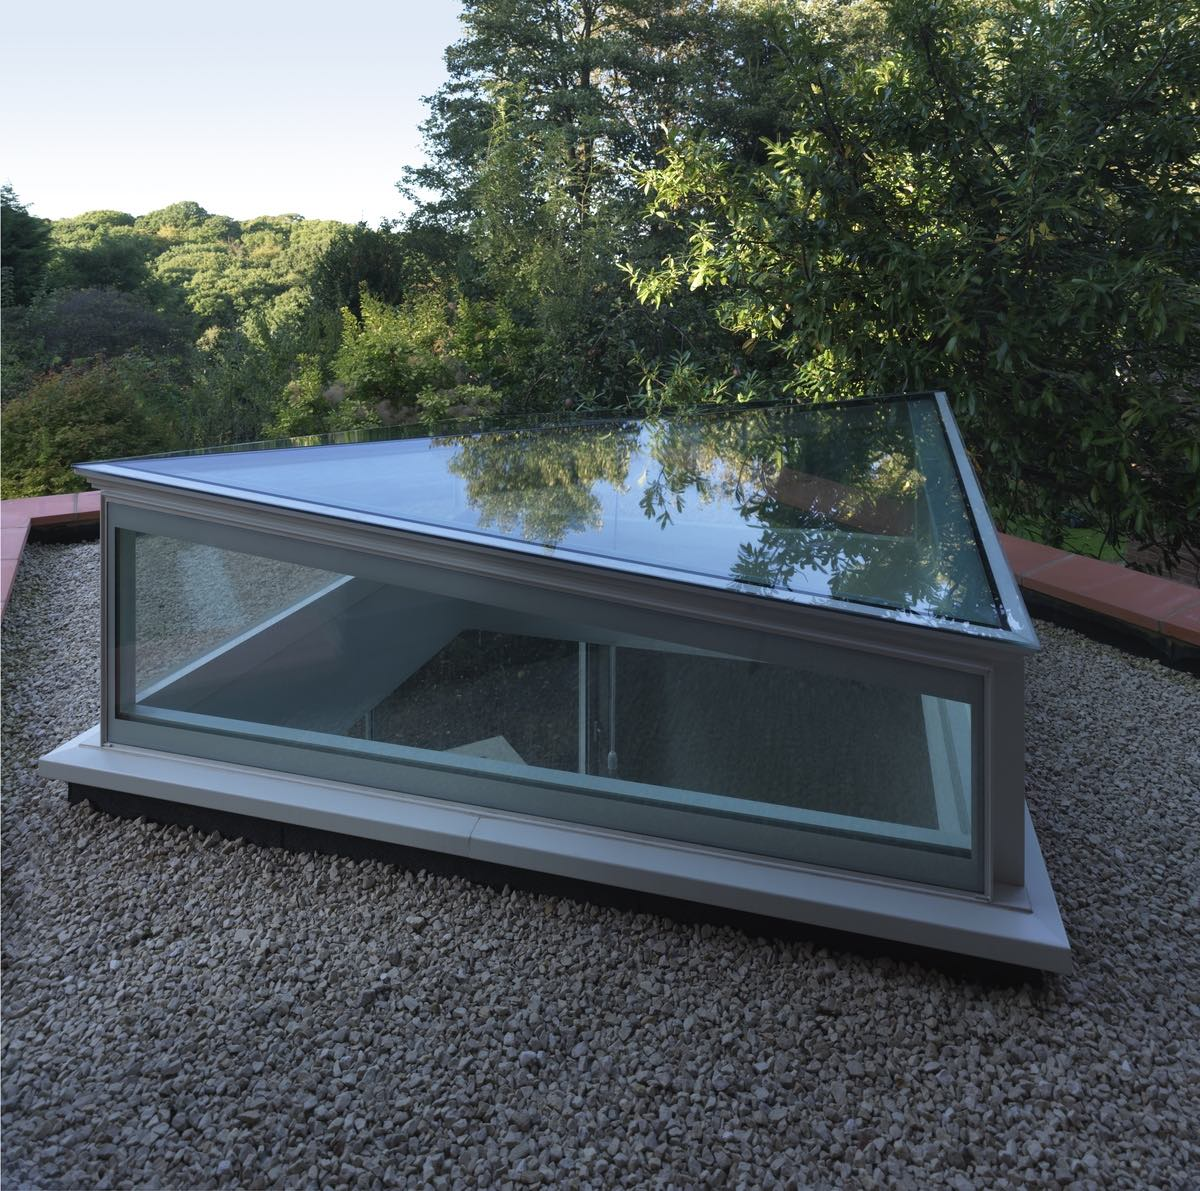 the skylight covered with glass at the roof of the house